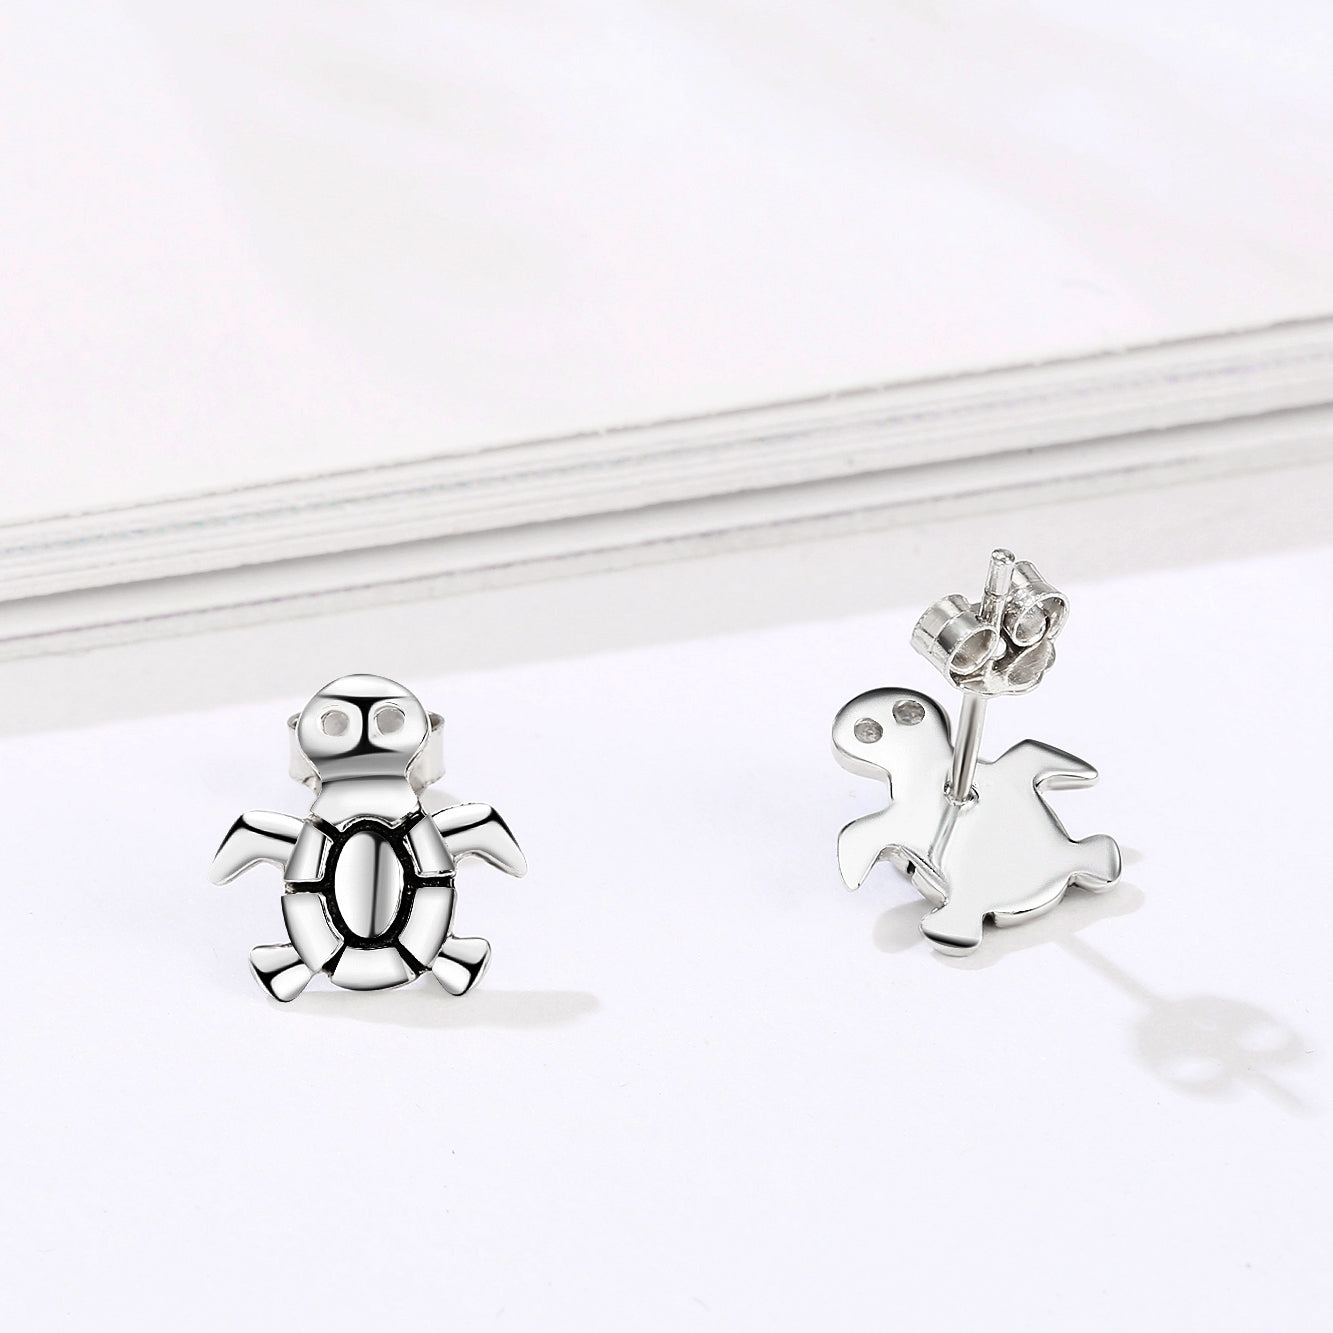 2019 Beautiful Designed Turtle Shape Earrings Silver Sterling Animal Earrings